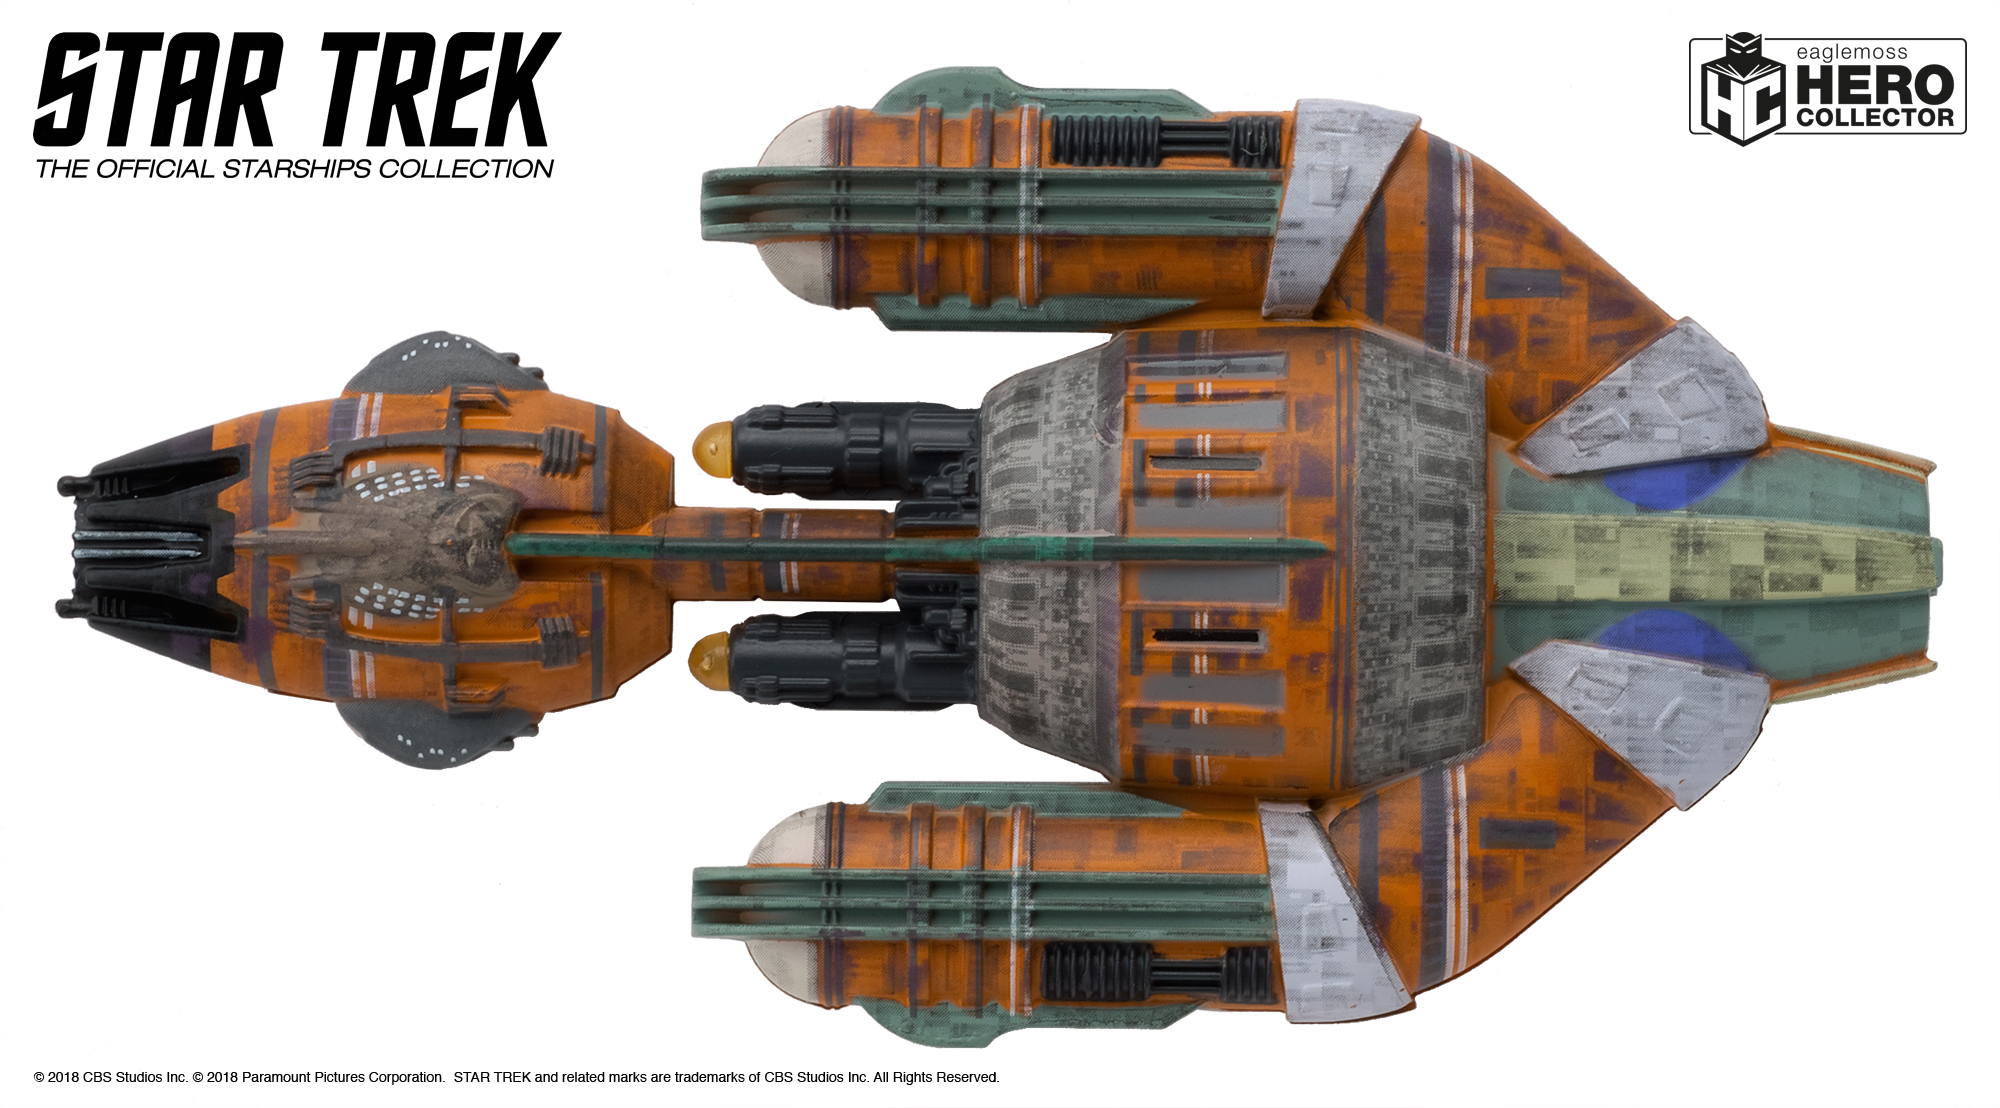 Star Trek Starships 145 150 First Look Hero Collector